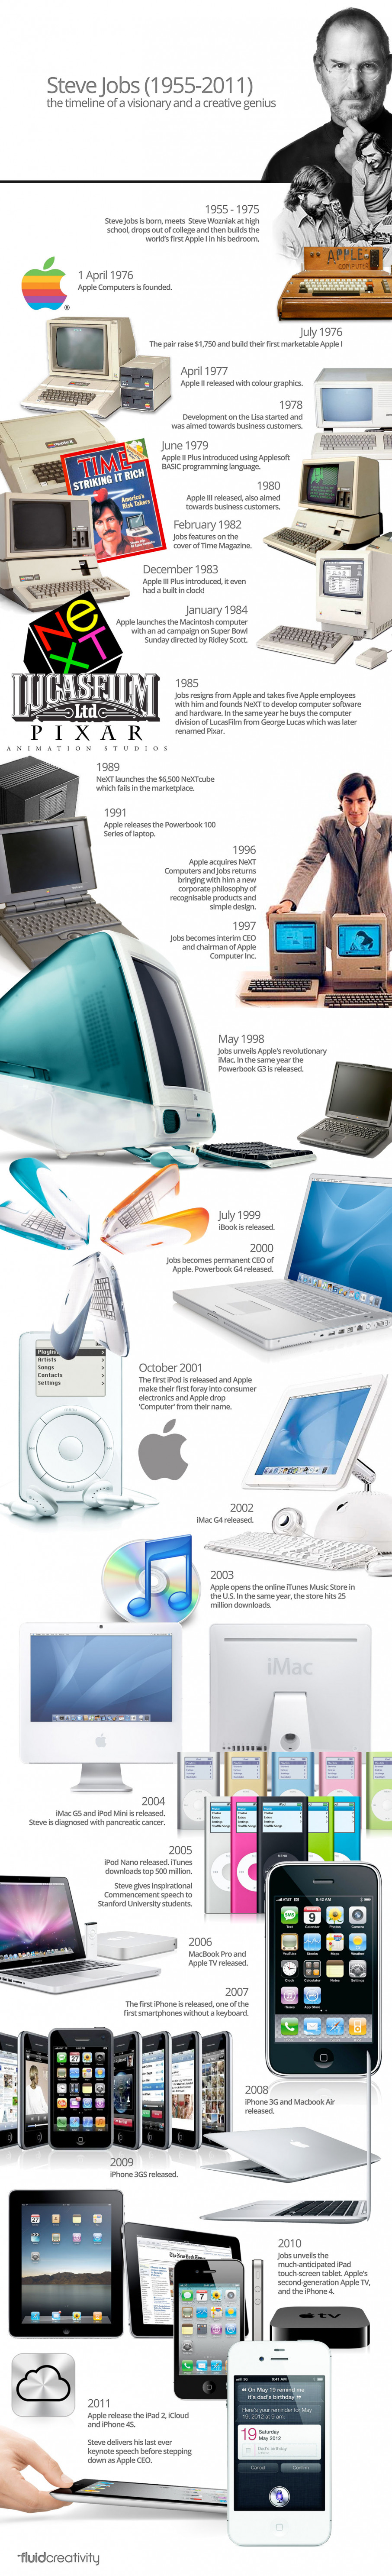 inventions of steve jobs Steve jobs launched one innovation after another after another, revolutionizing computers, entertainment, music, retail, mobile, and telecommunications it's no wonder that cnbc named steve jobs the #1 most innovative and transformative business leader of the past 25 years.